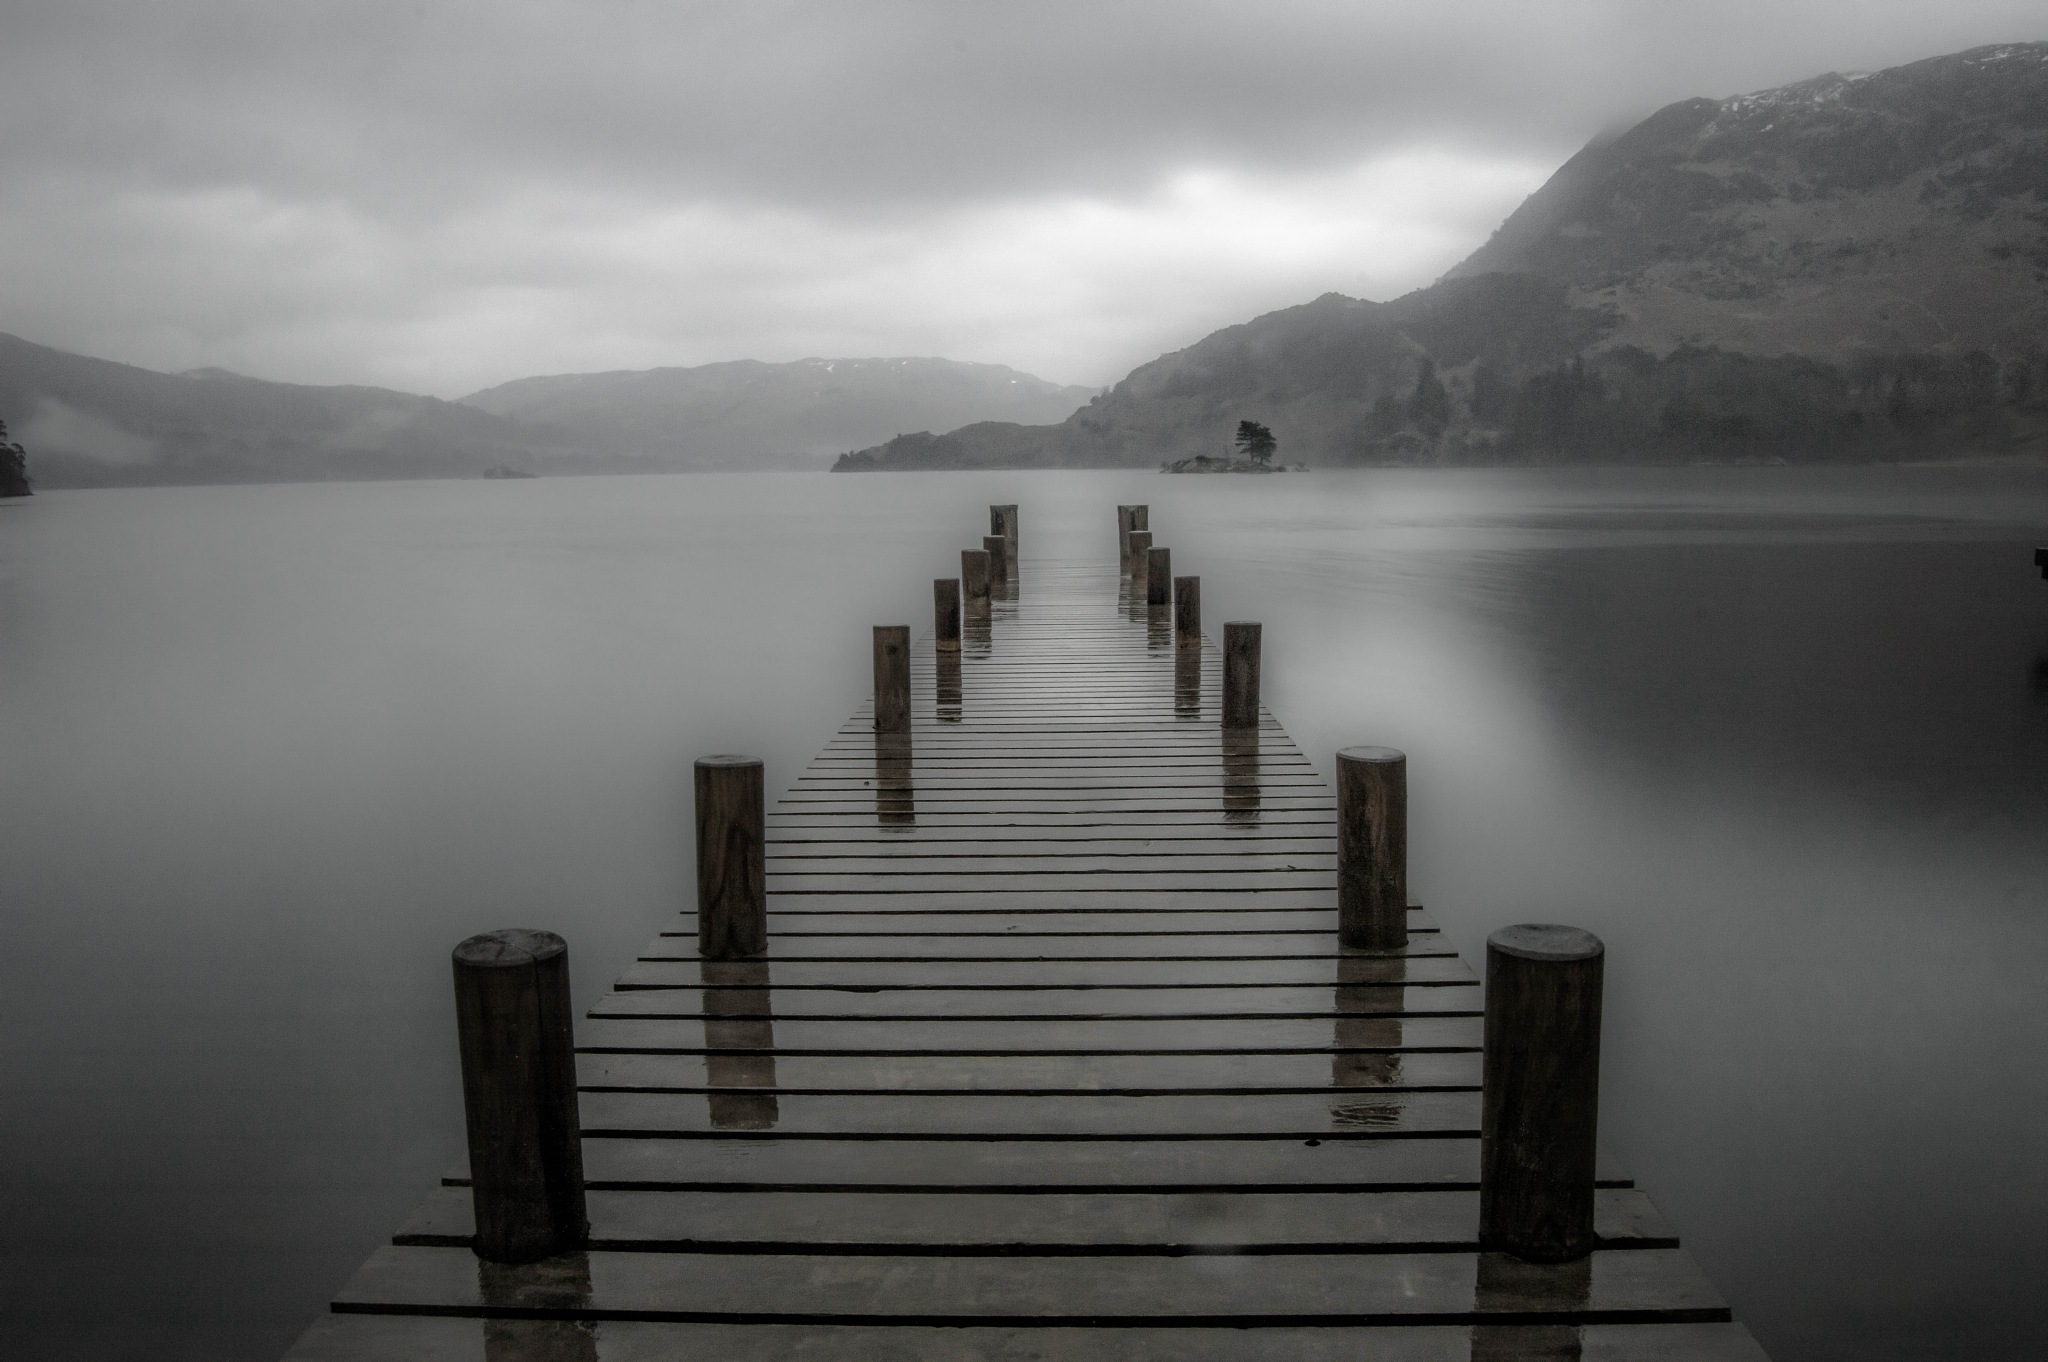 Jetty at Ullswater,lake district by robin.howe.56